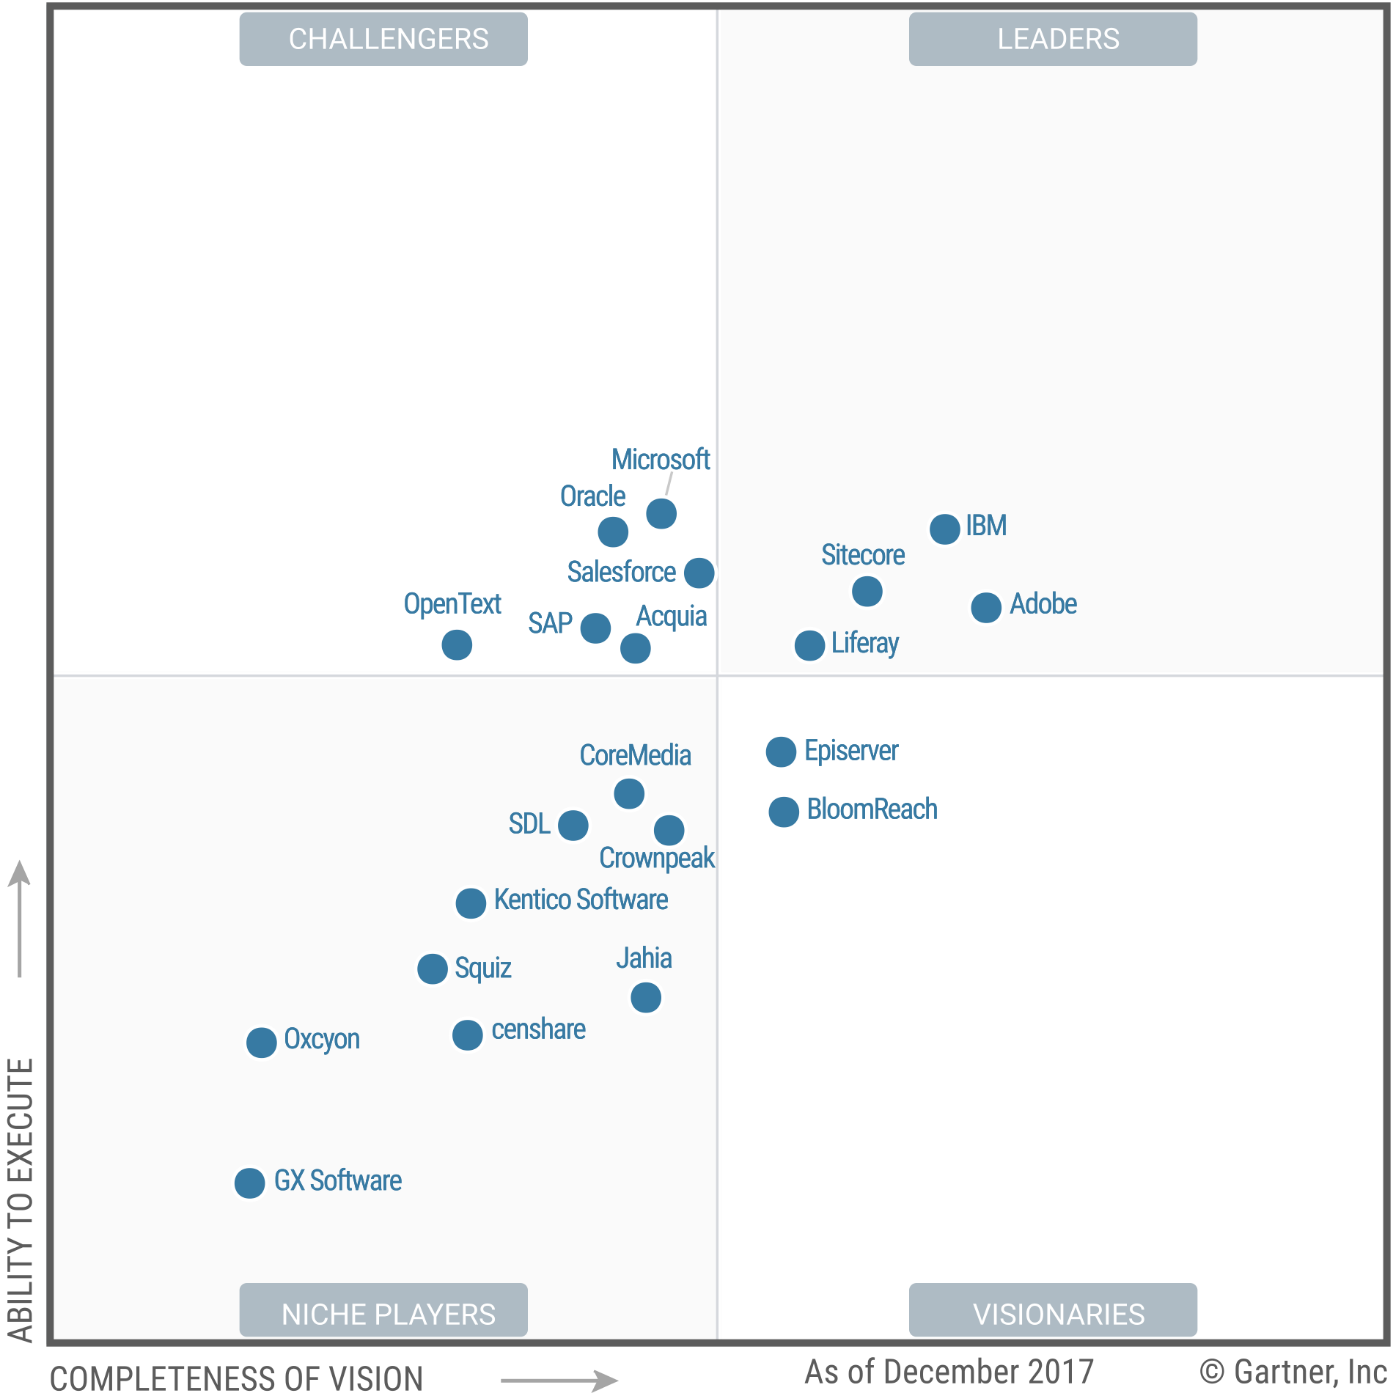 Gartner-januari-2018 Magic Quadrant for Digital Experience Platforms